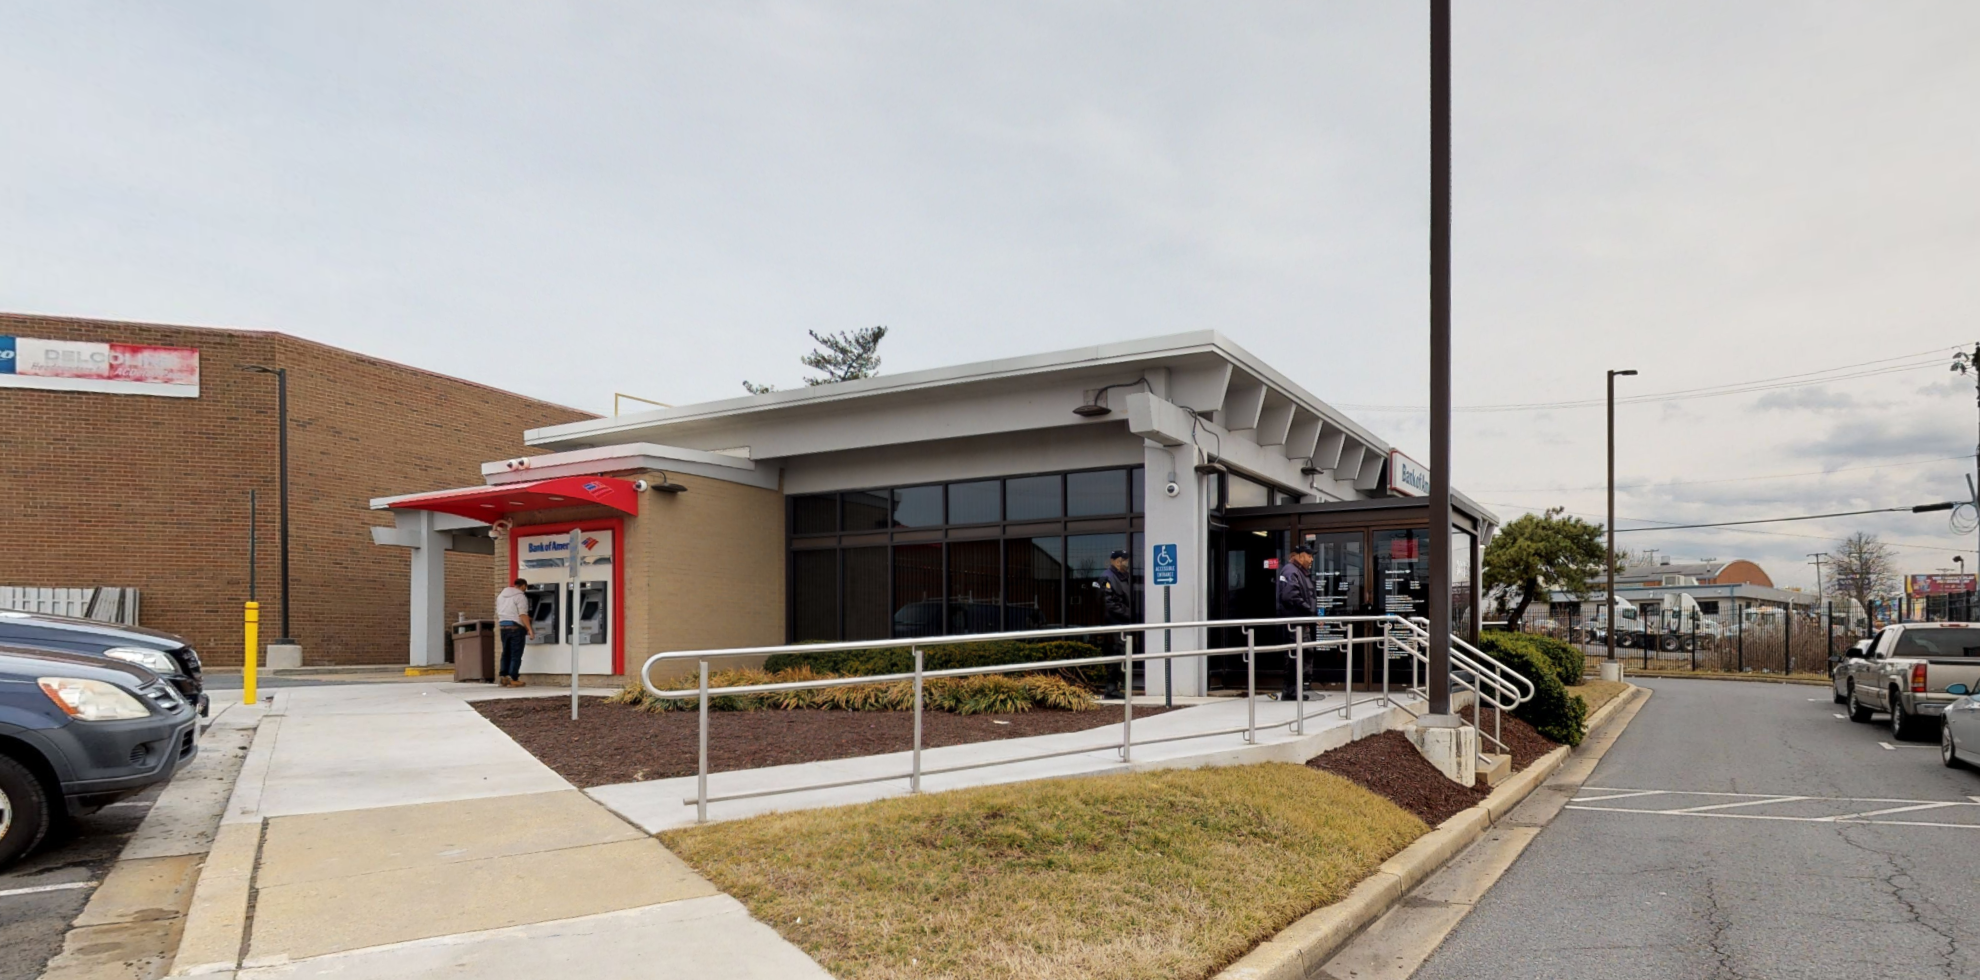 Bank of America financial center with drive-thru ATM | 3413 Kenilworth Ave, Hyattsville, MD 20781